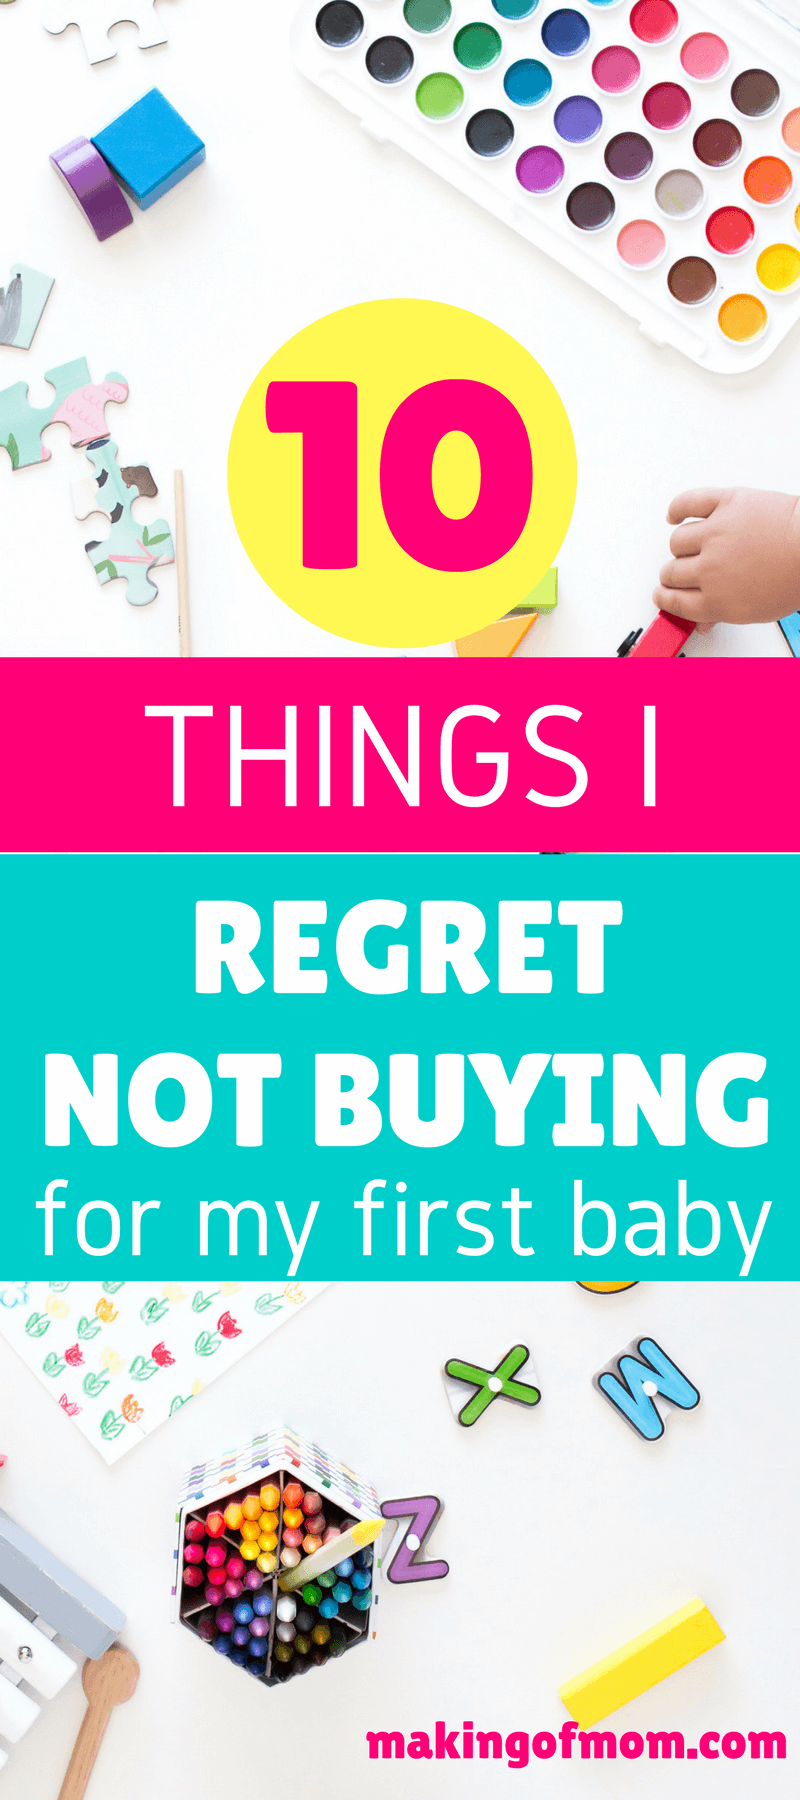 05c29e6f9 what-to-buy-for-baby-2 - Making of Mom